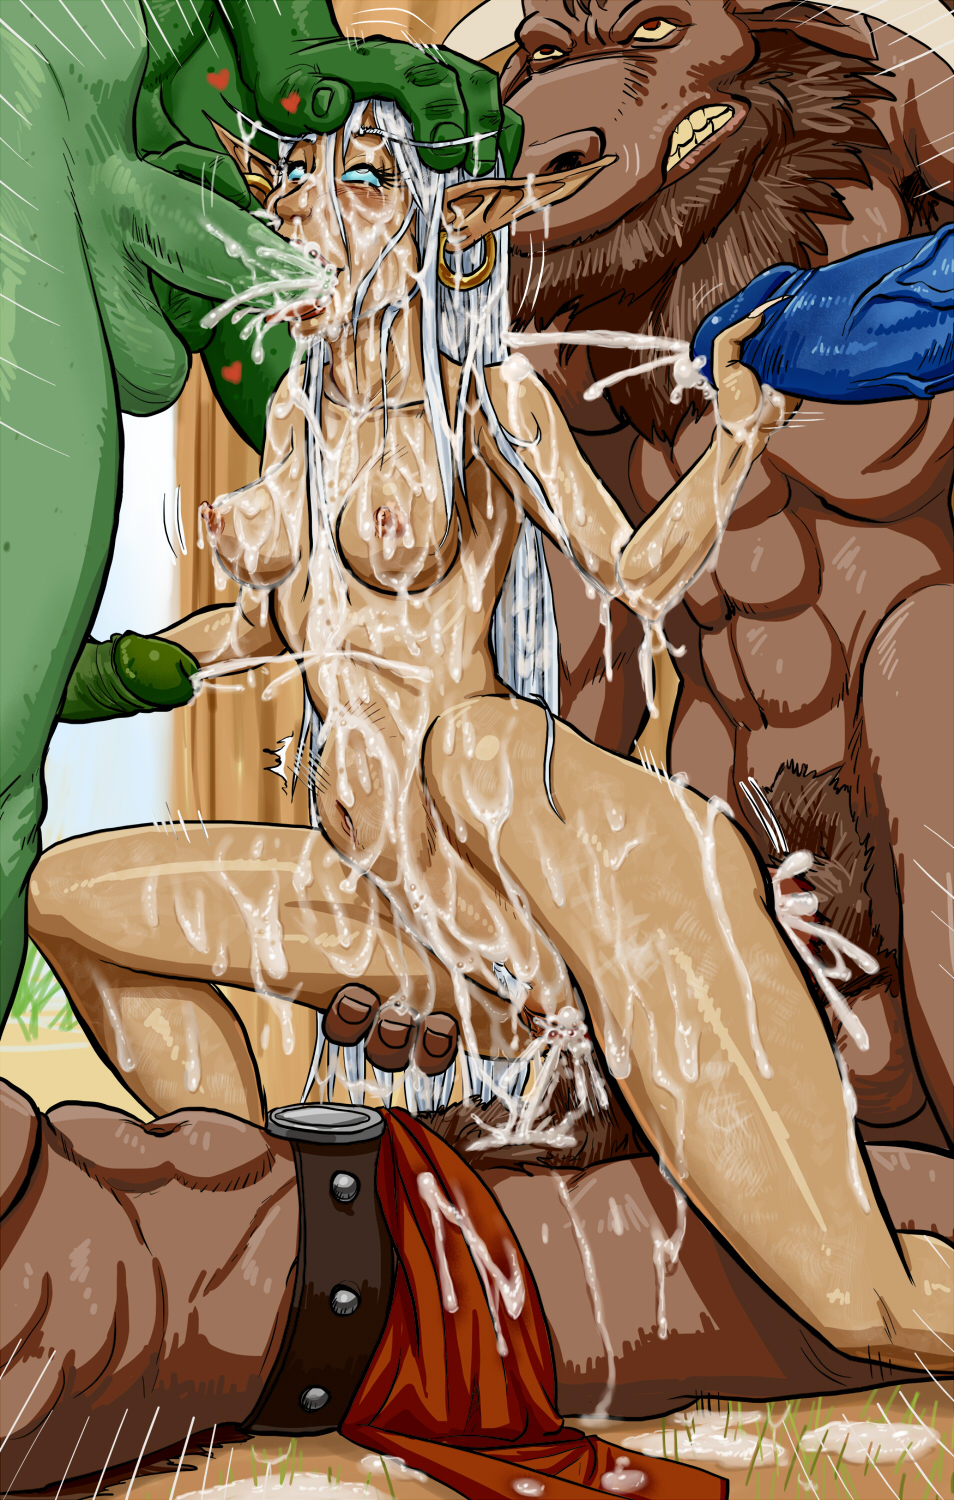 Bdsm world of warcraft hentai pict adult pictures